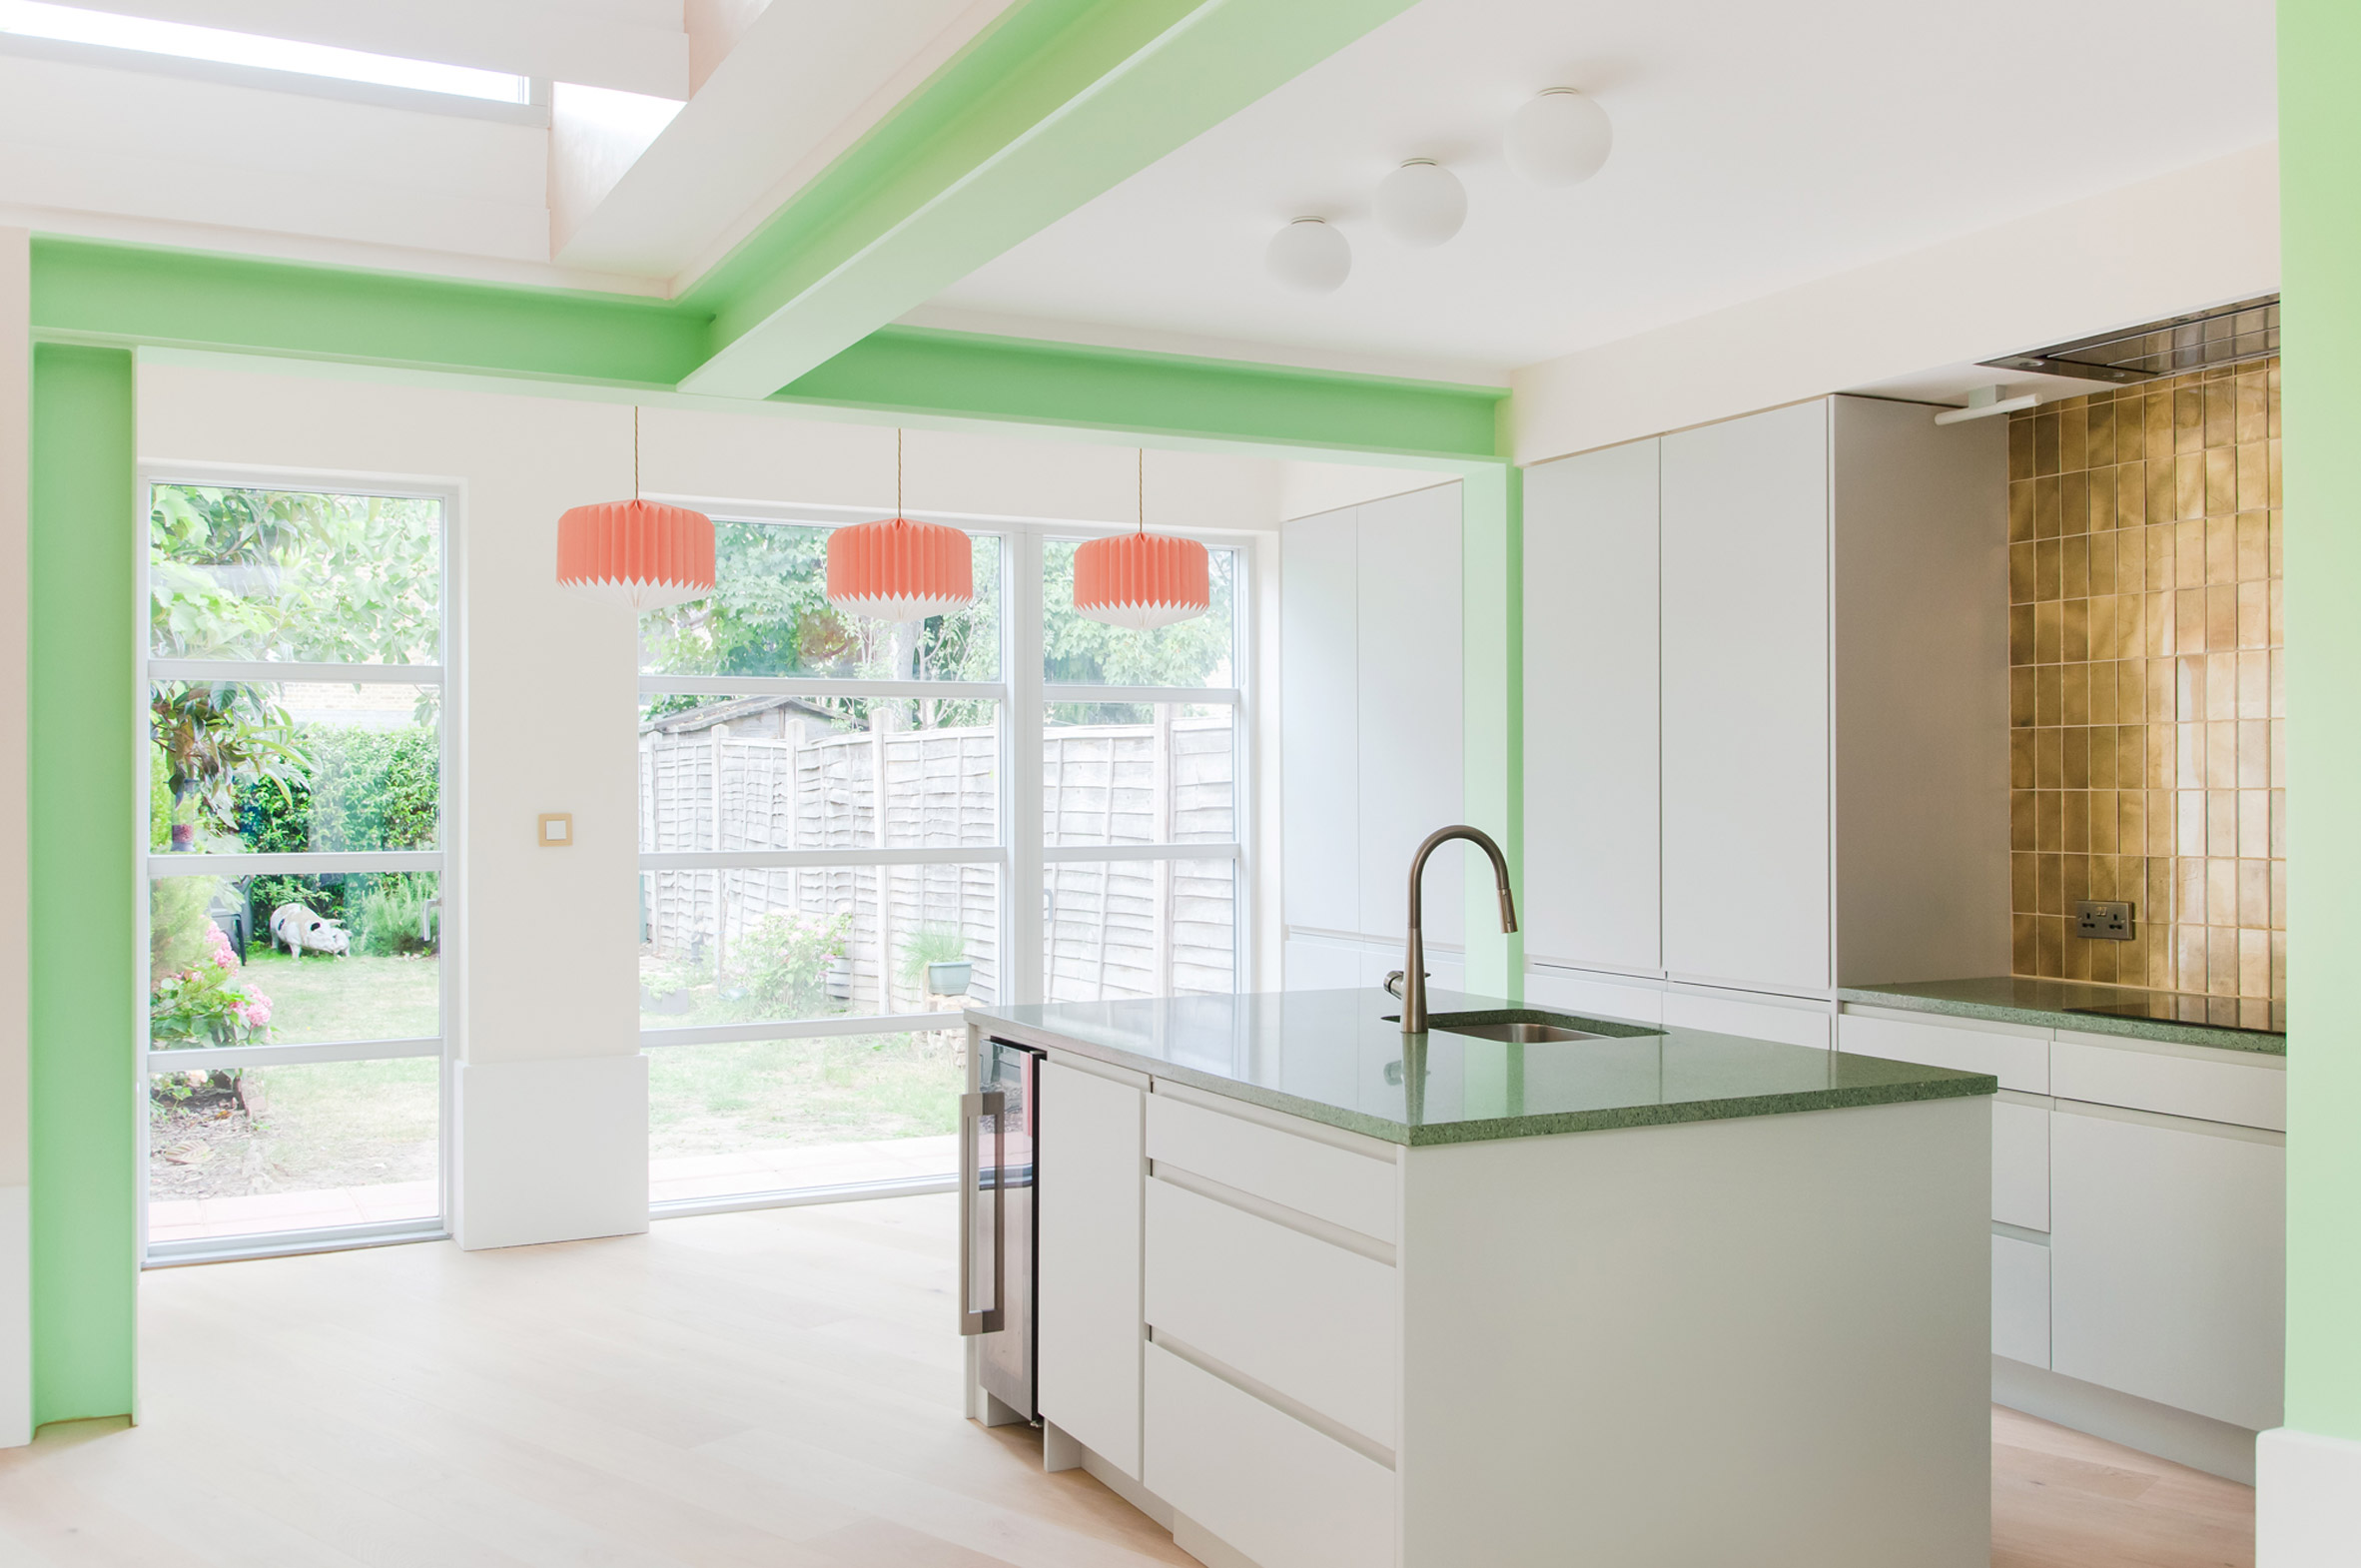 A white-walled kitchen with green-painted structural beams